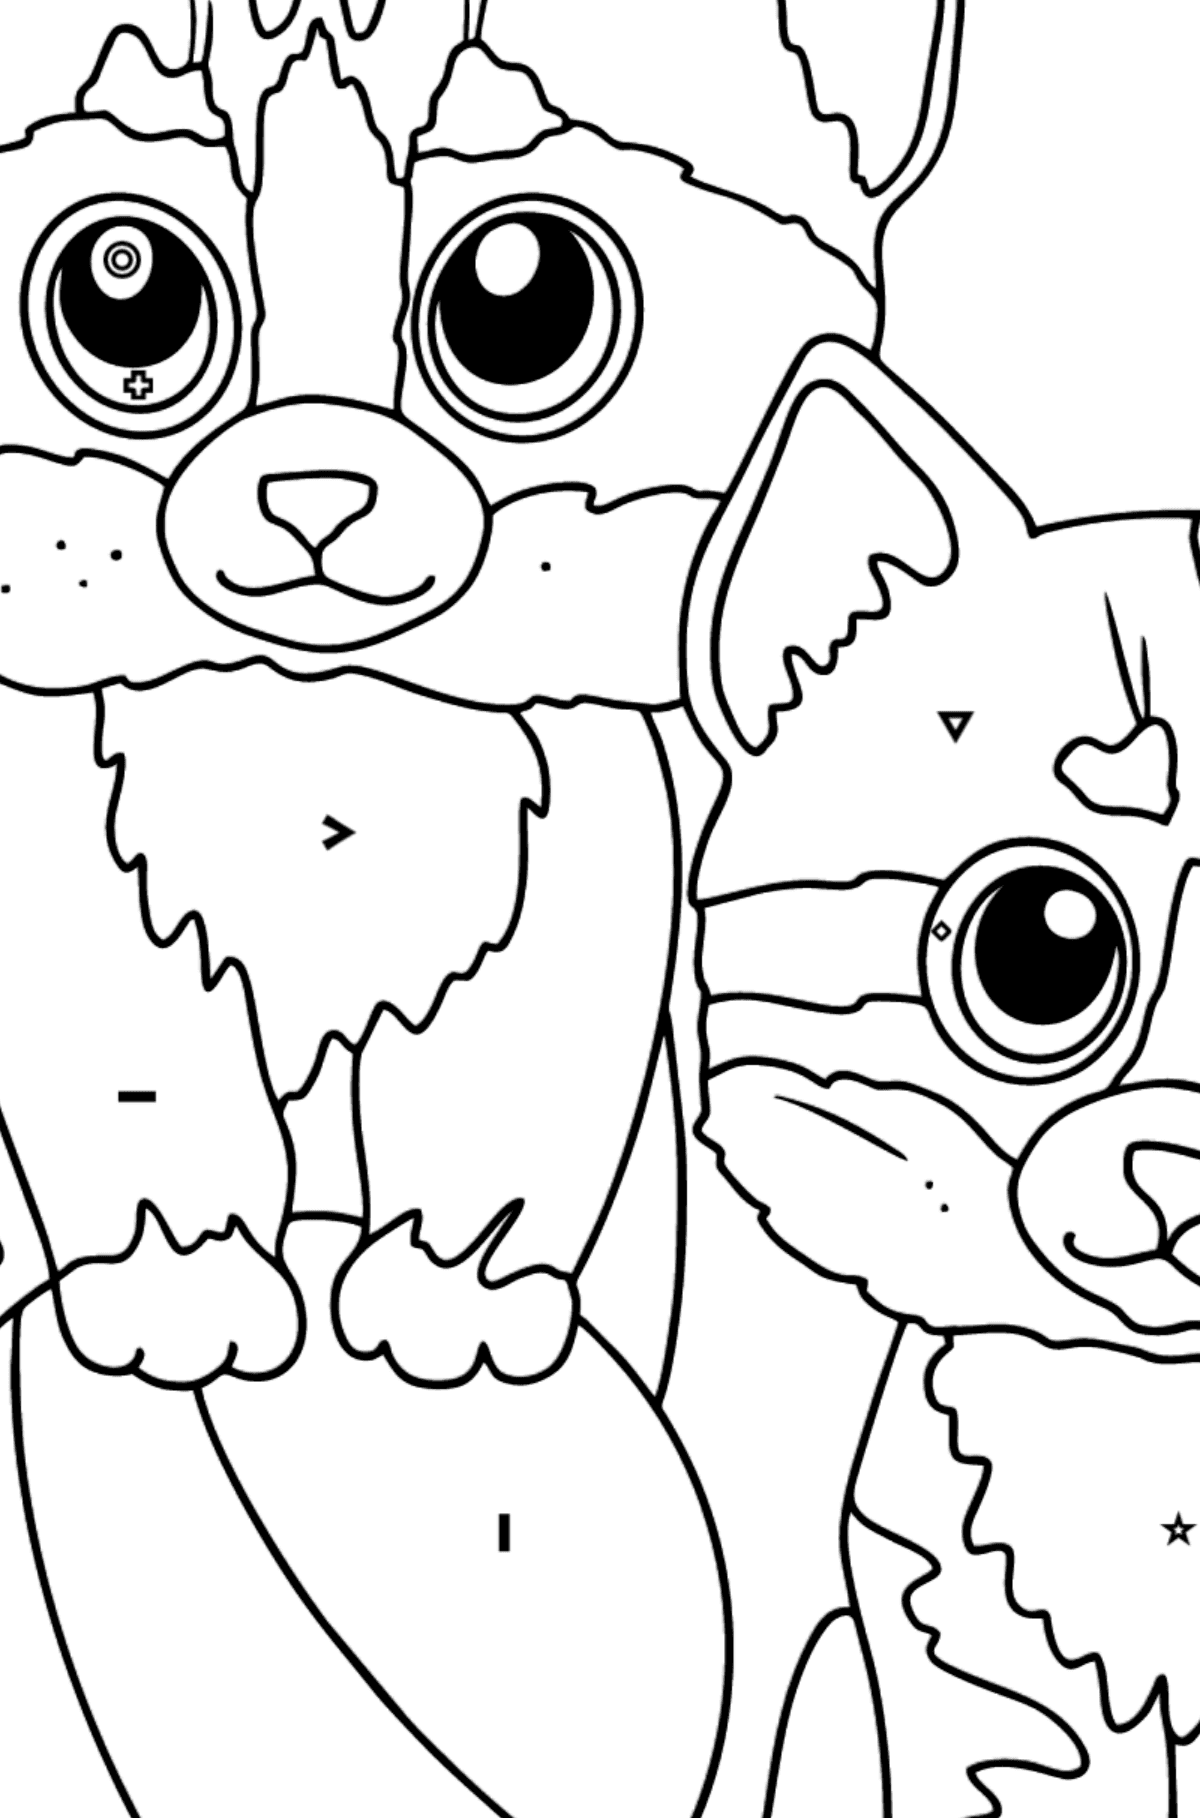 Coloring Page - Two Friendly Kittens Playing with a Ball - Coloring by Symbols and Geometric Shapes for Kids